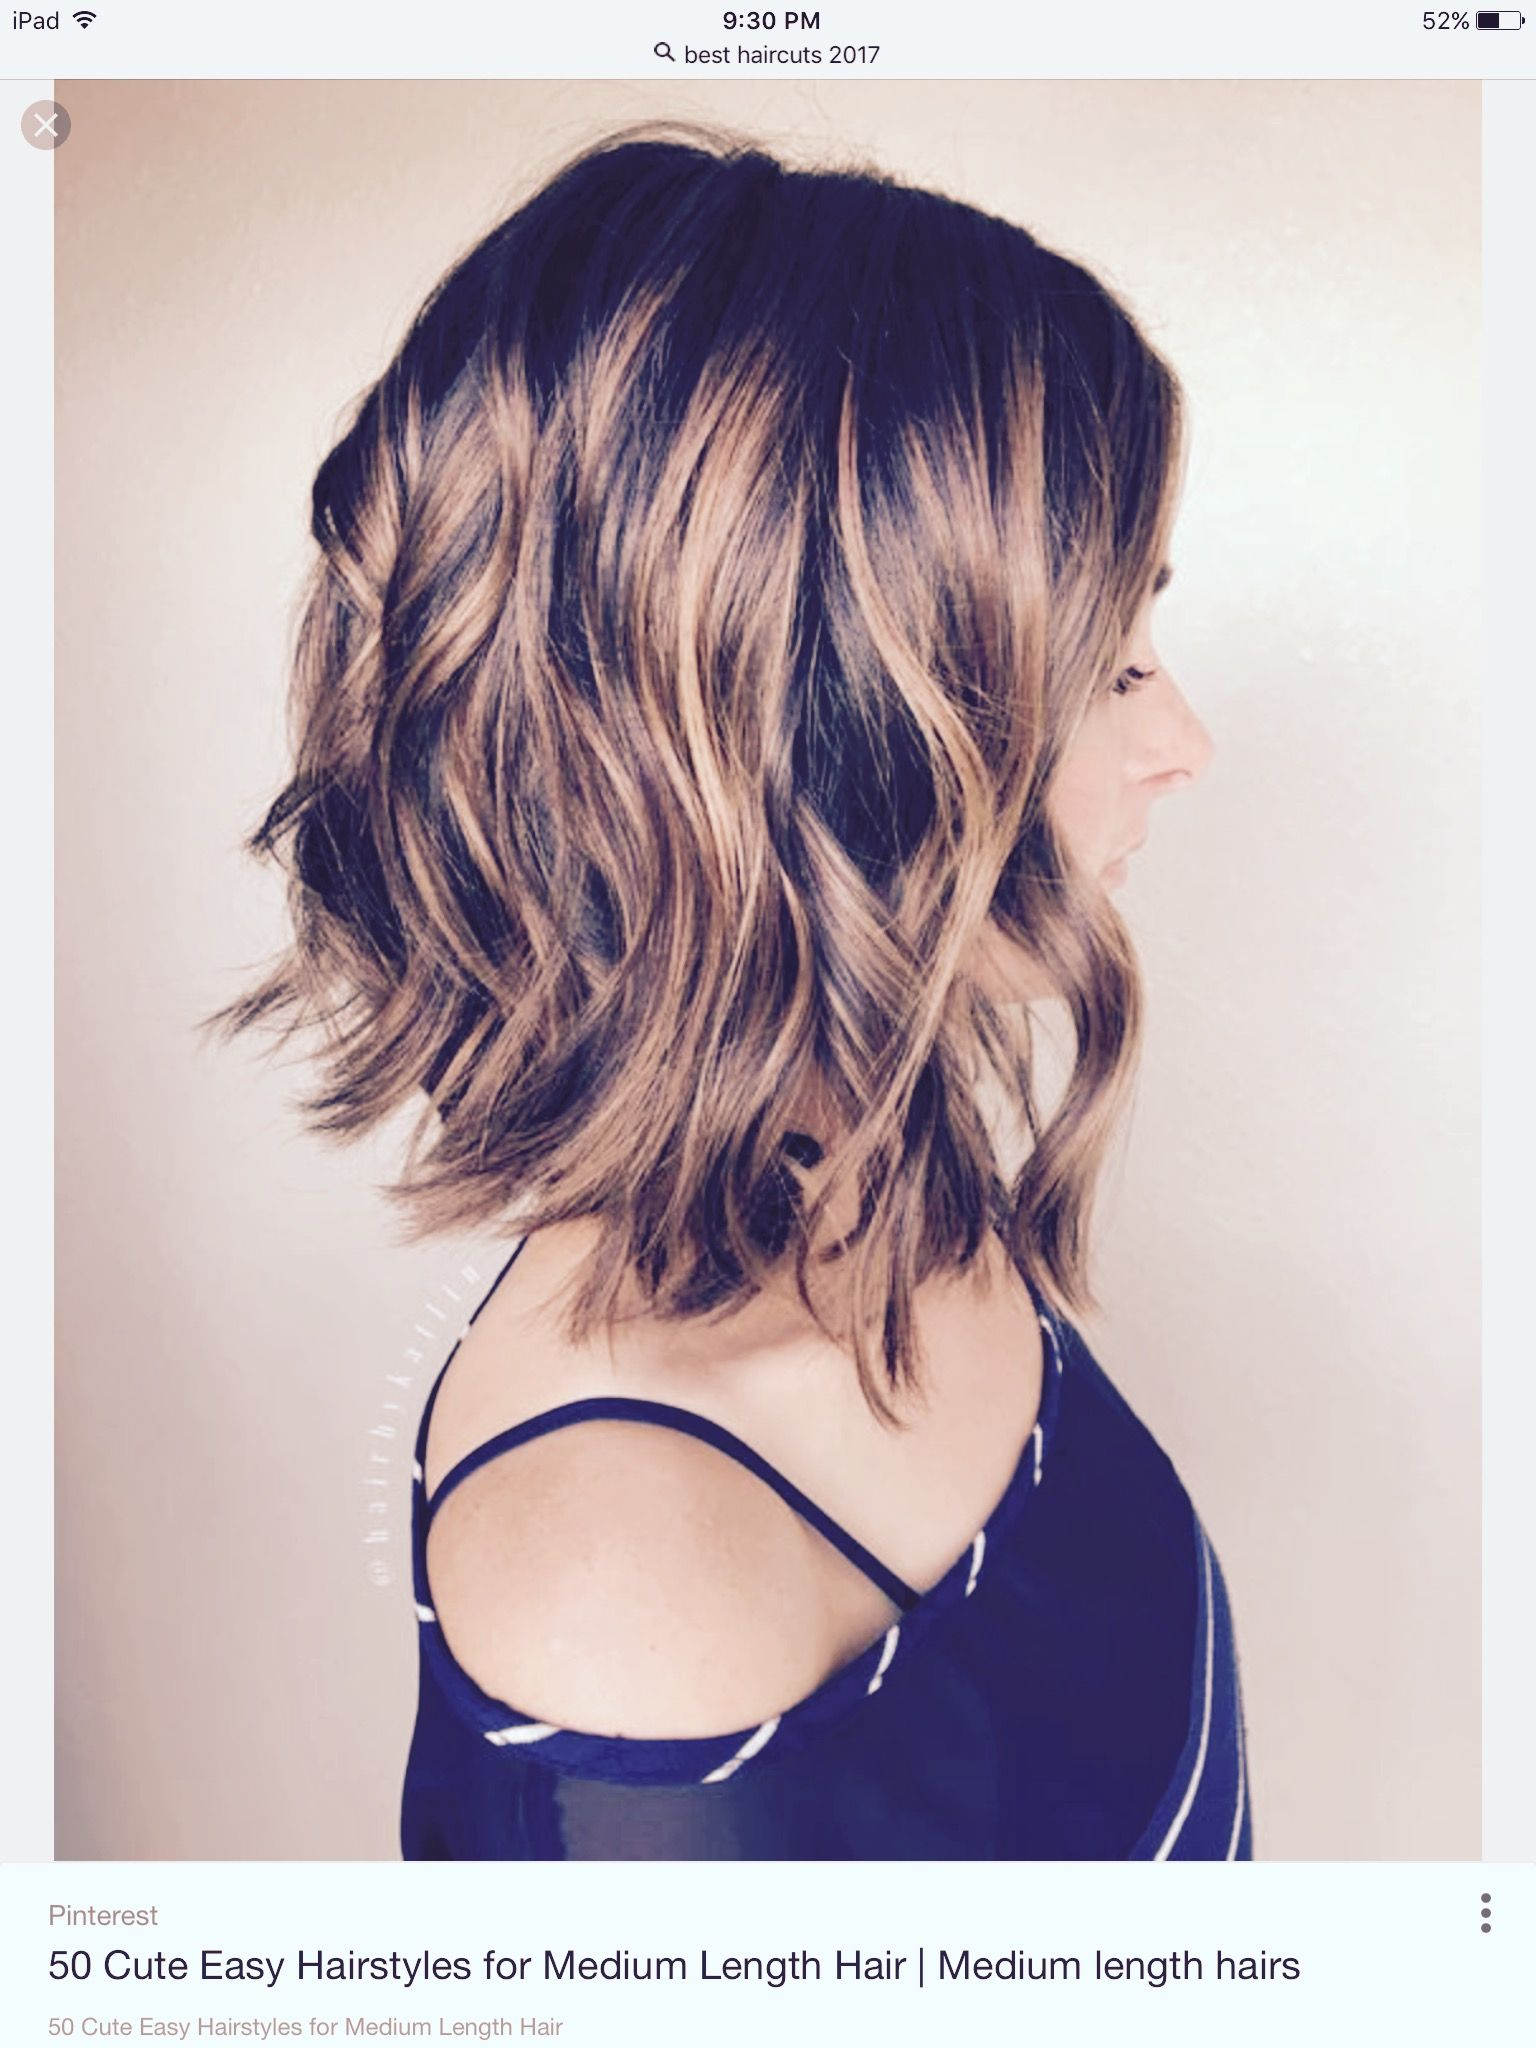 Pin by caley on haircuts pinterest